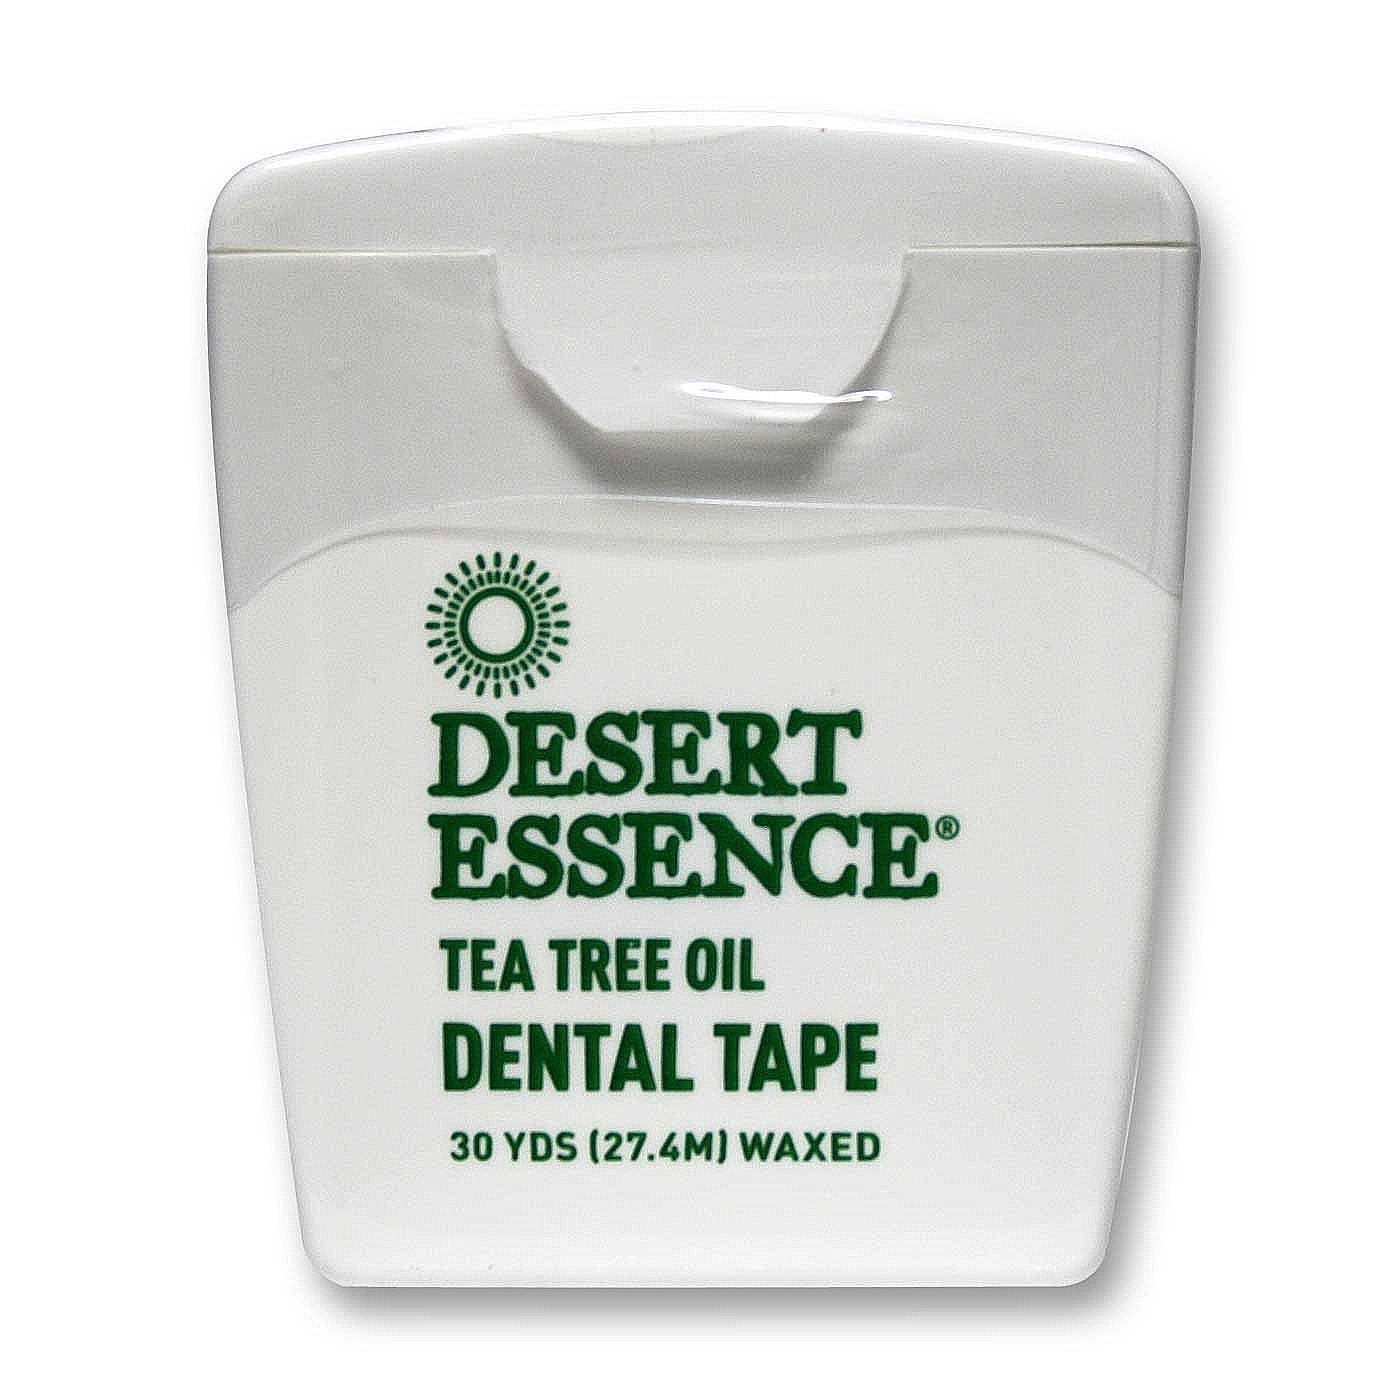 Desert Essence Tea Tree Oil Dental Tape 30 Yards Evitamins Com